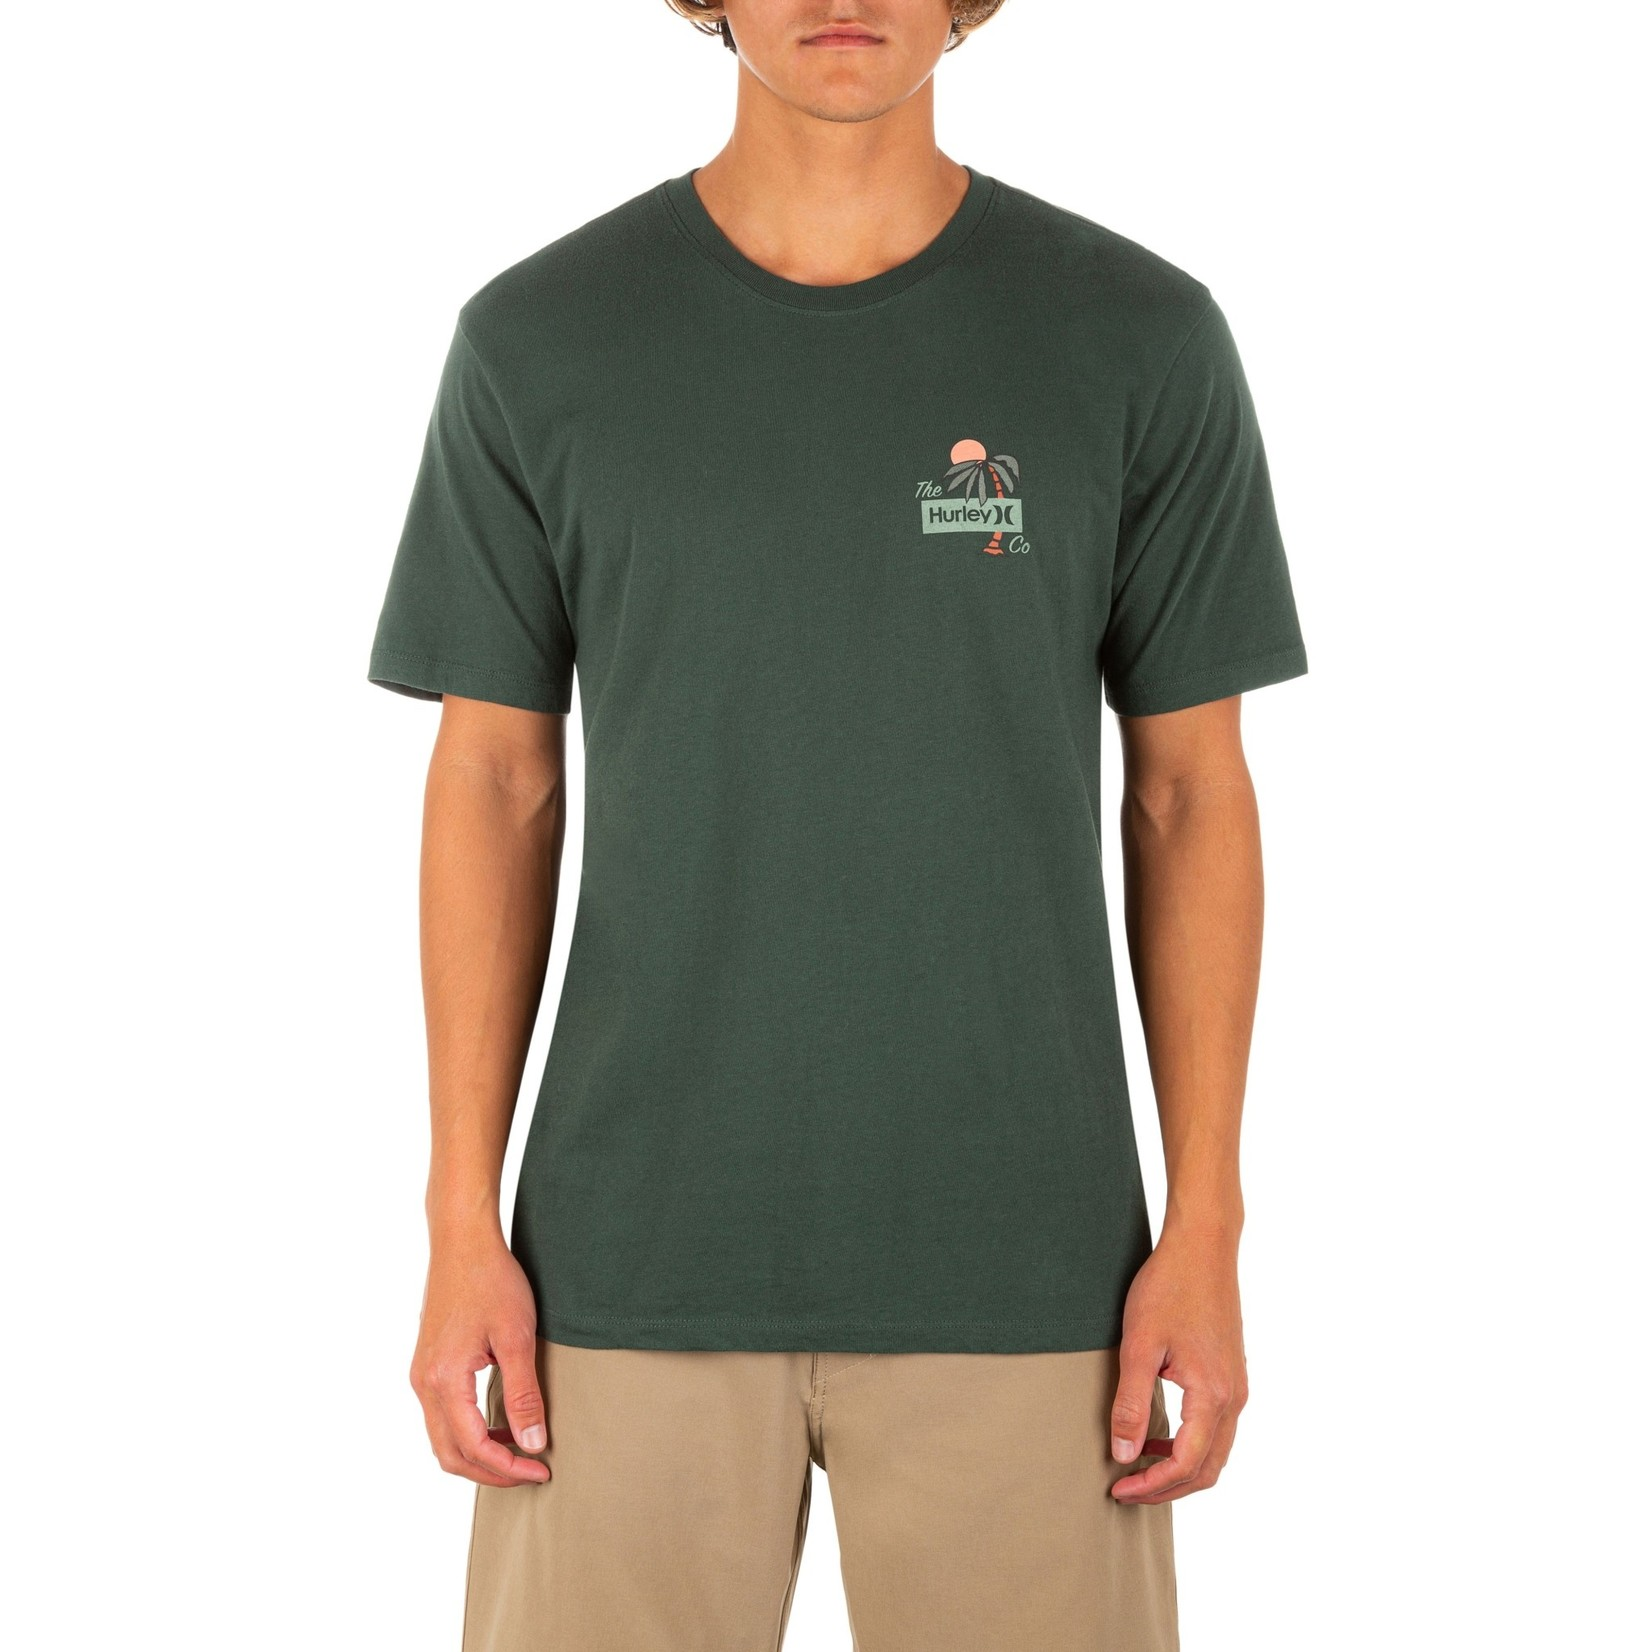 Hurley Hurley T-Shirt, Everyday Washed Welcome to Paradise SS, Mens